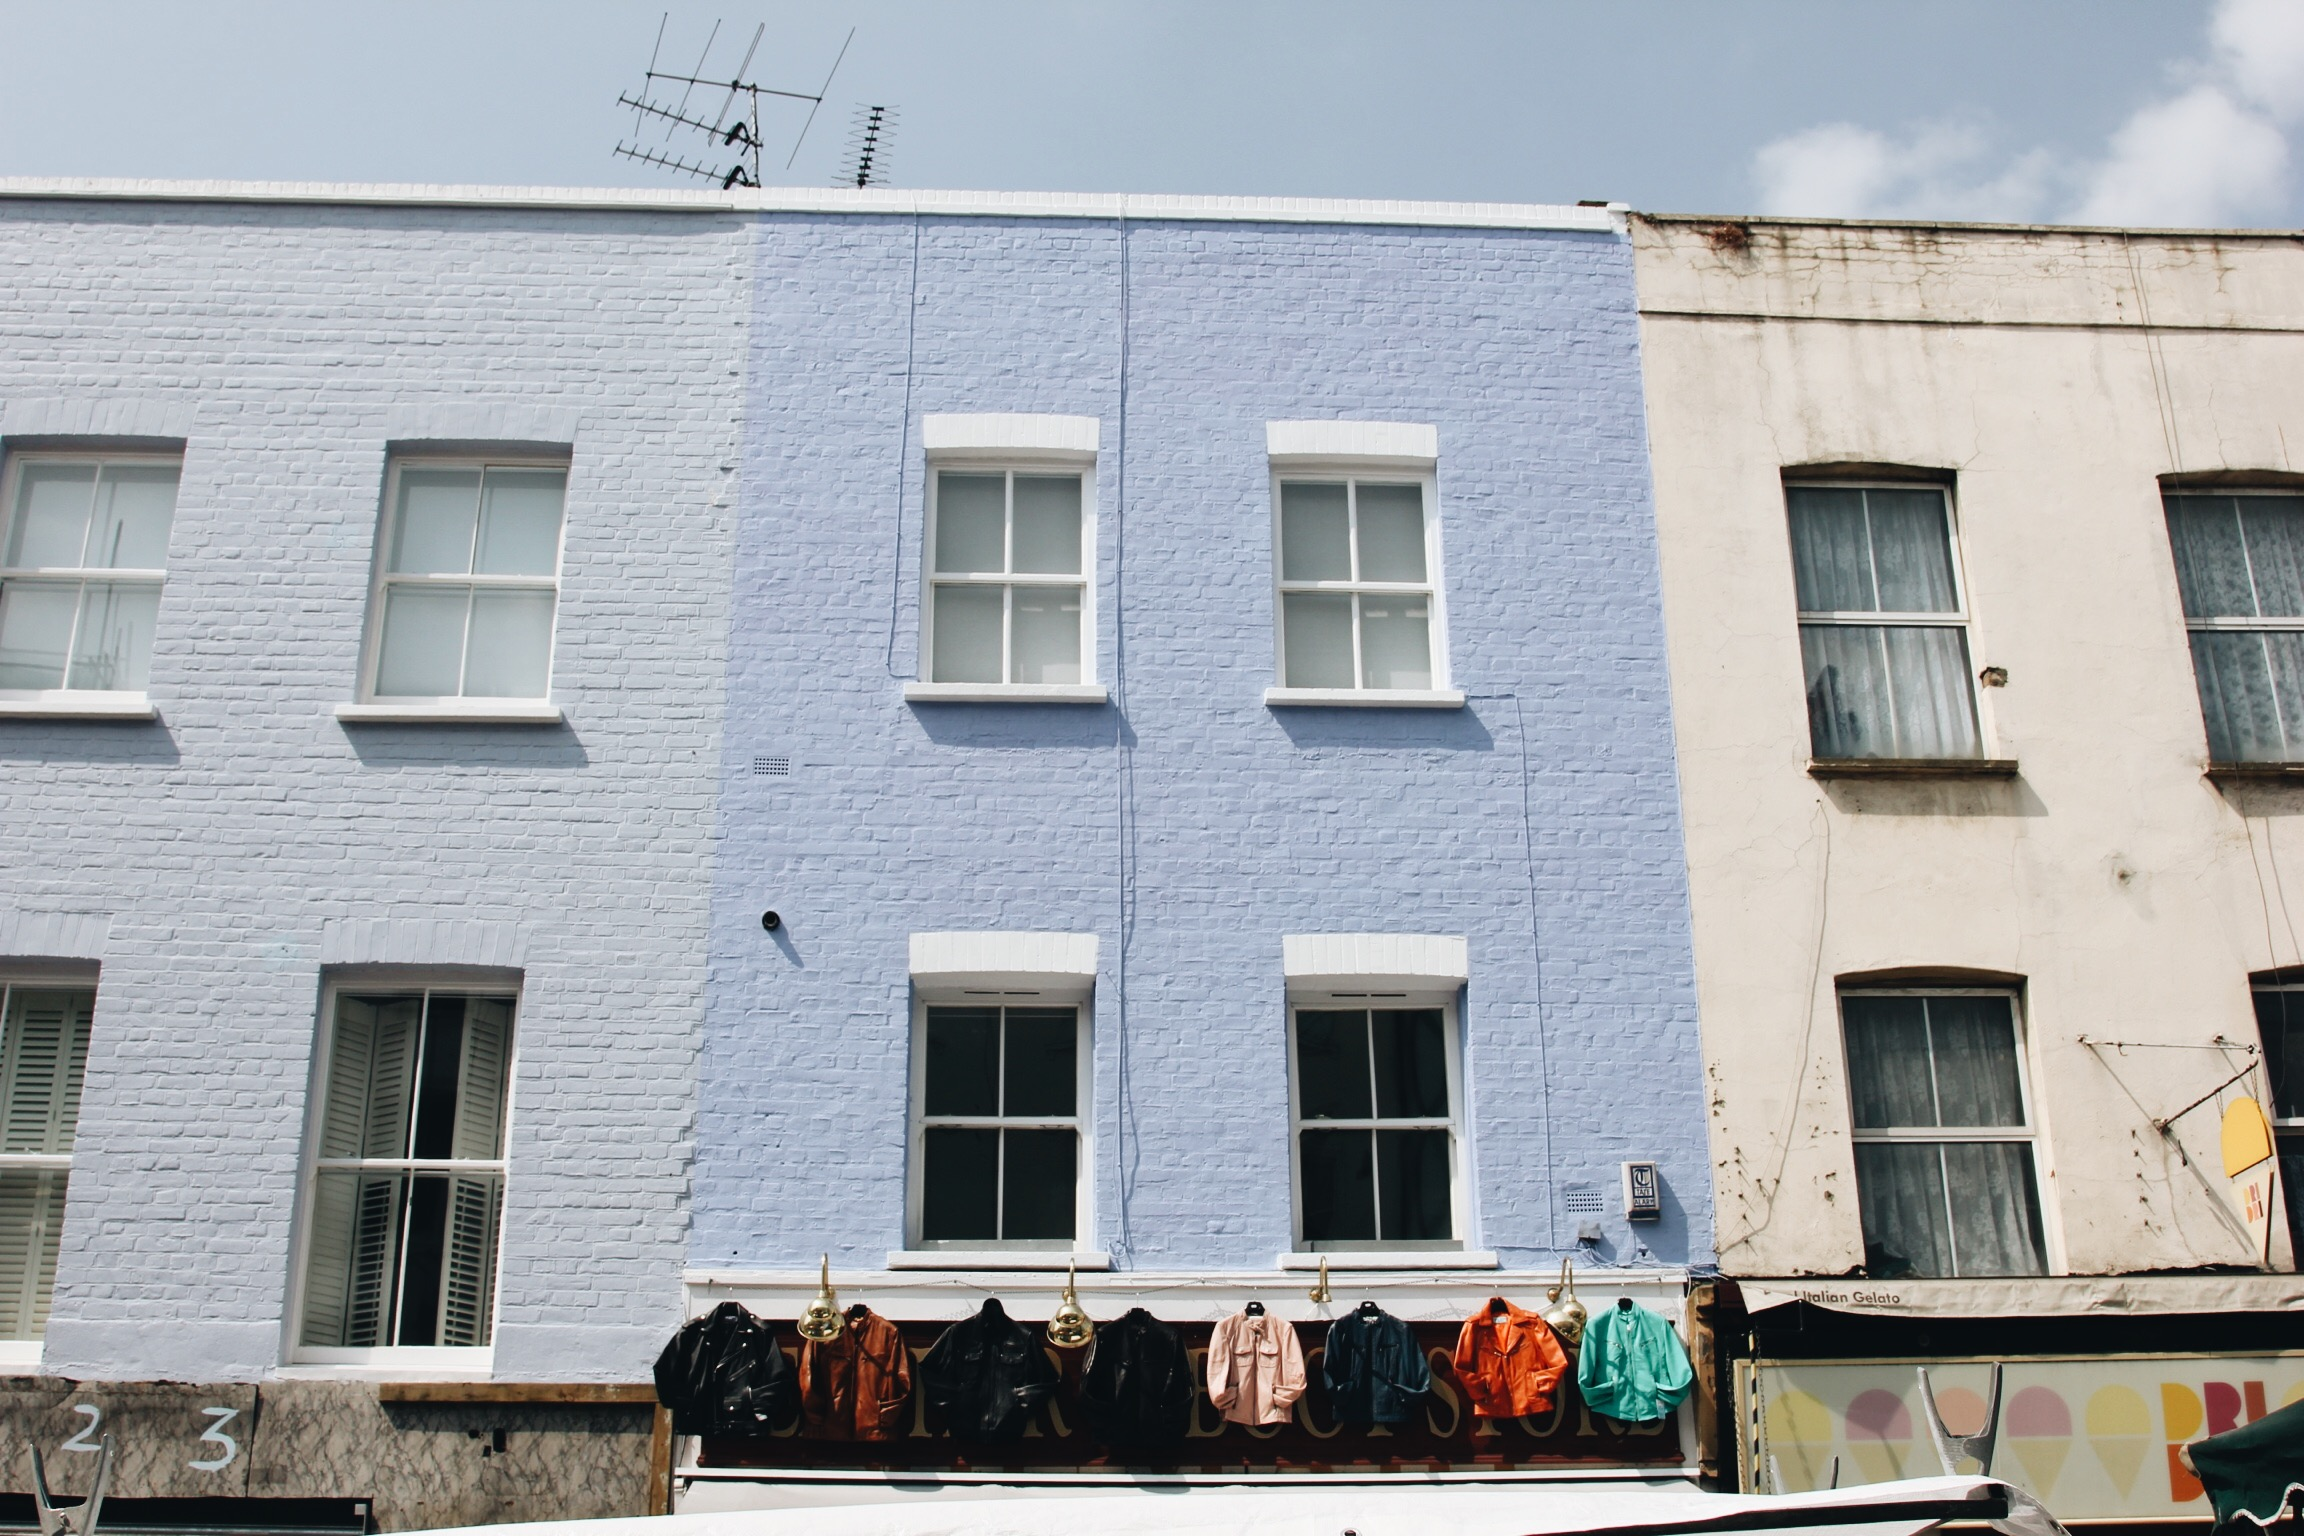 portobello-road-nottinghill.jpg